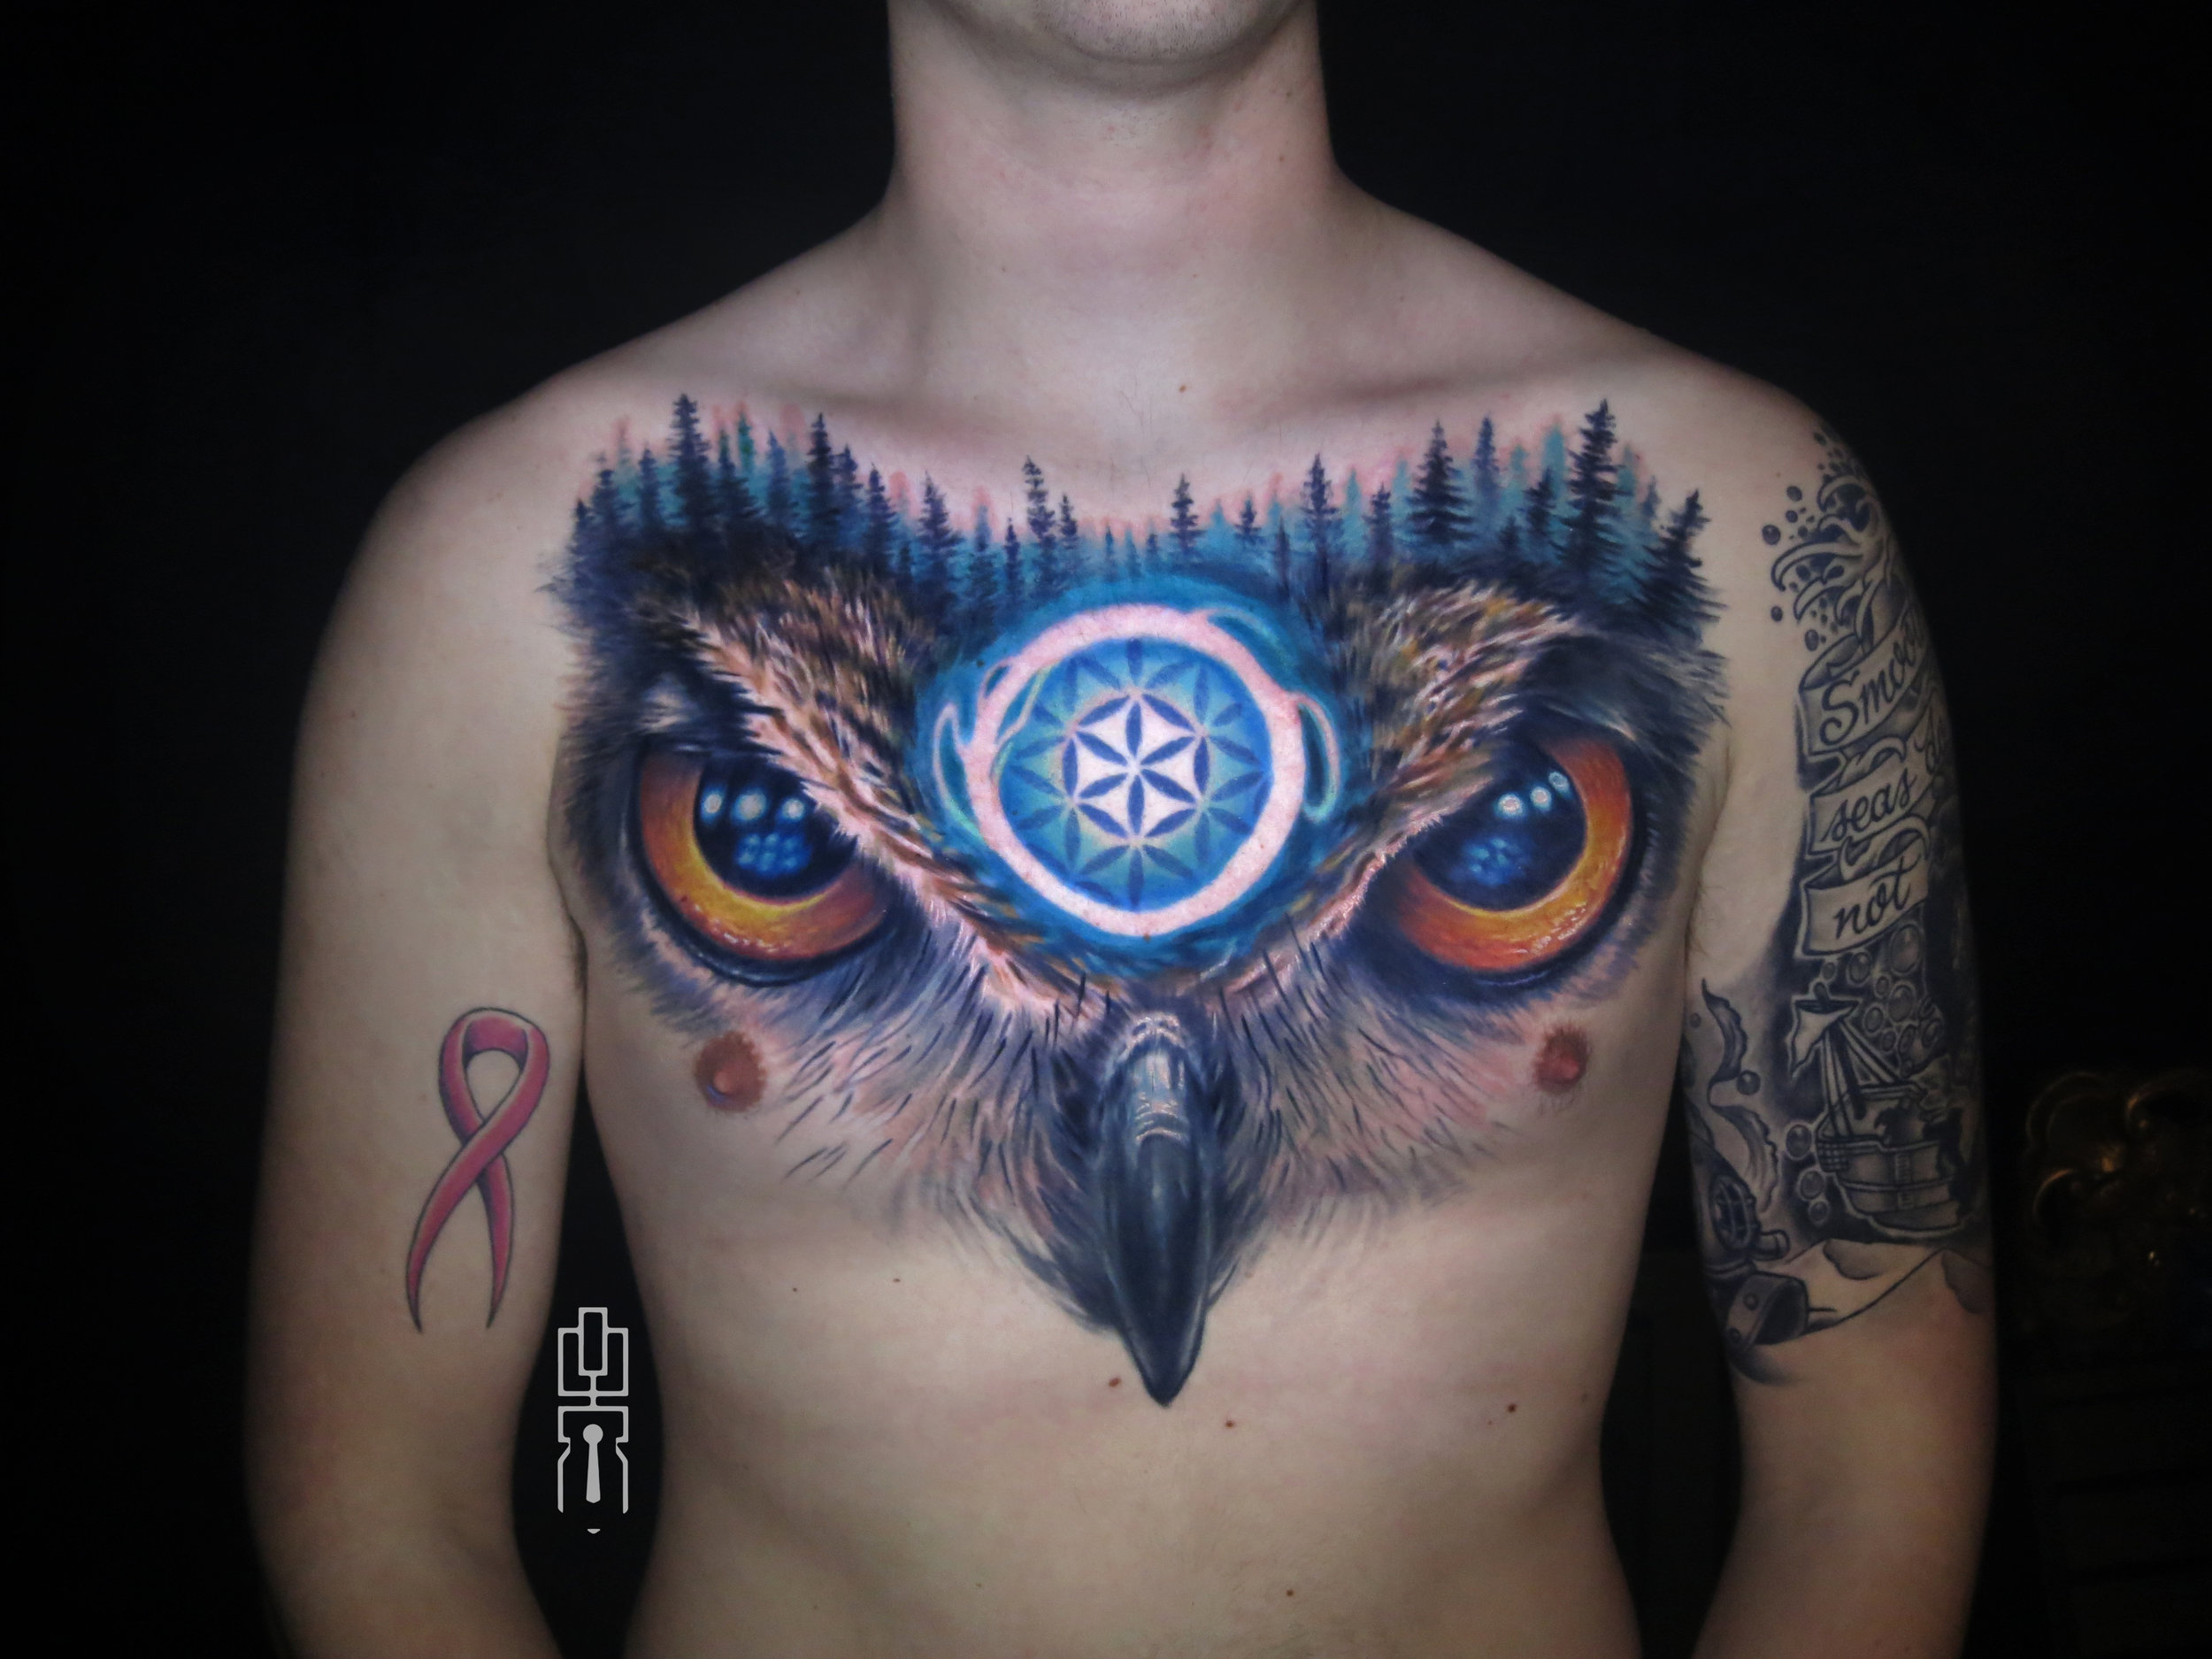 sacred flower of life owl chest piece tattoo.jpg